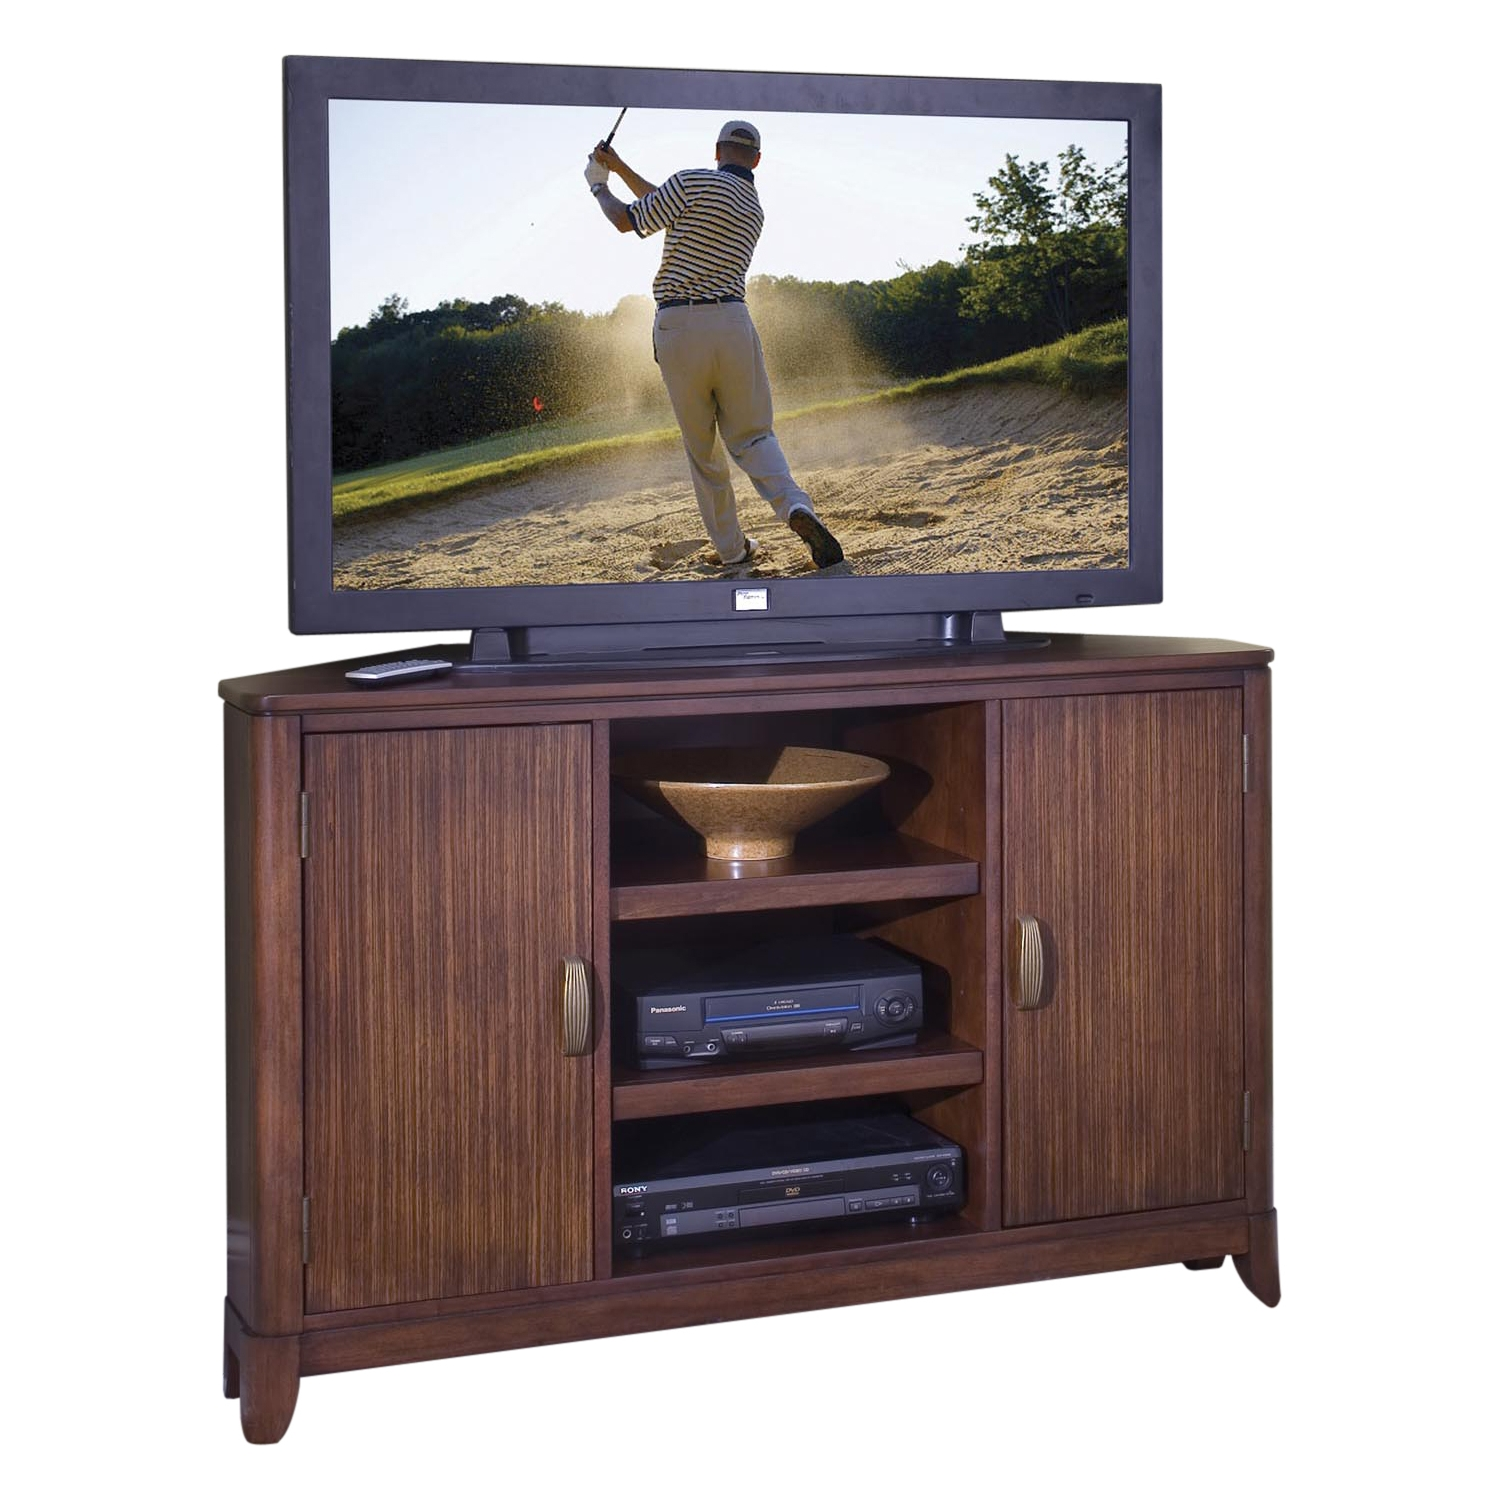 Home Styles Paris Corner Entertainment TV Stand - Mahogany Finish